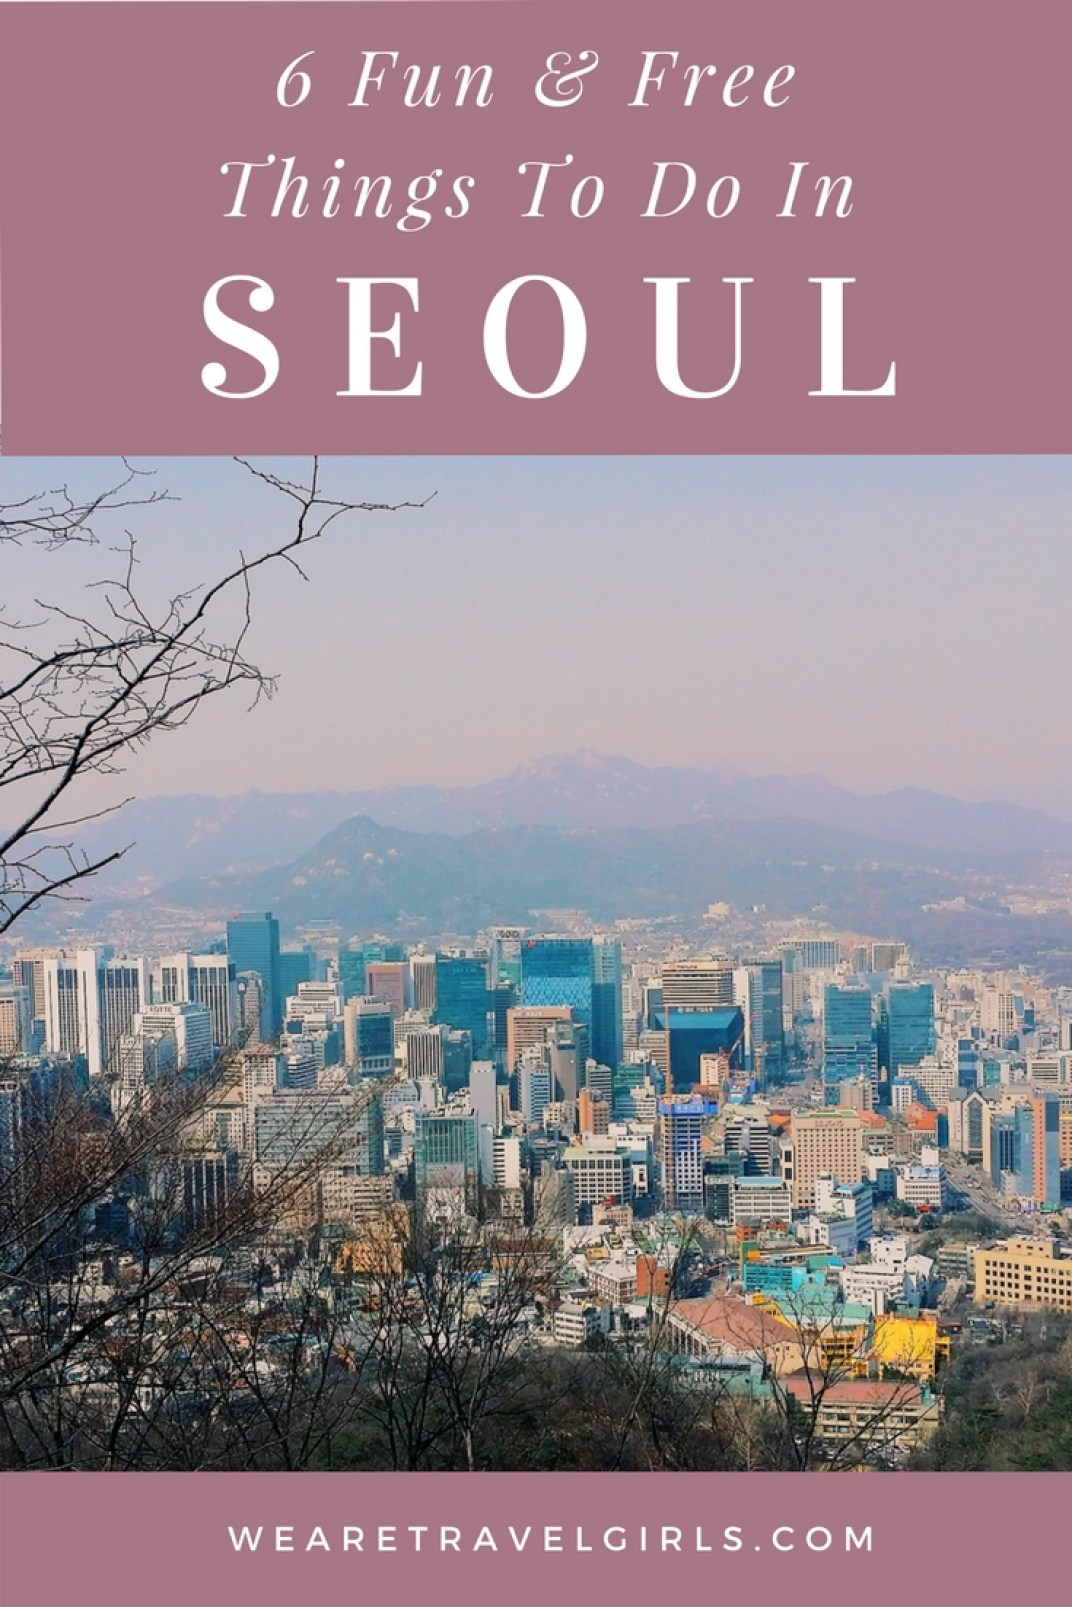 6 FREE THINGS TO DO IN SEOUL